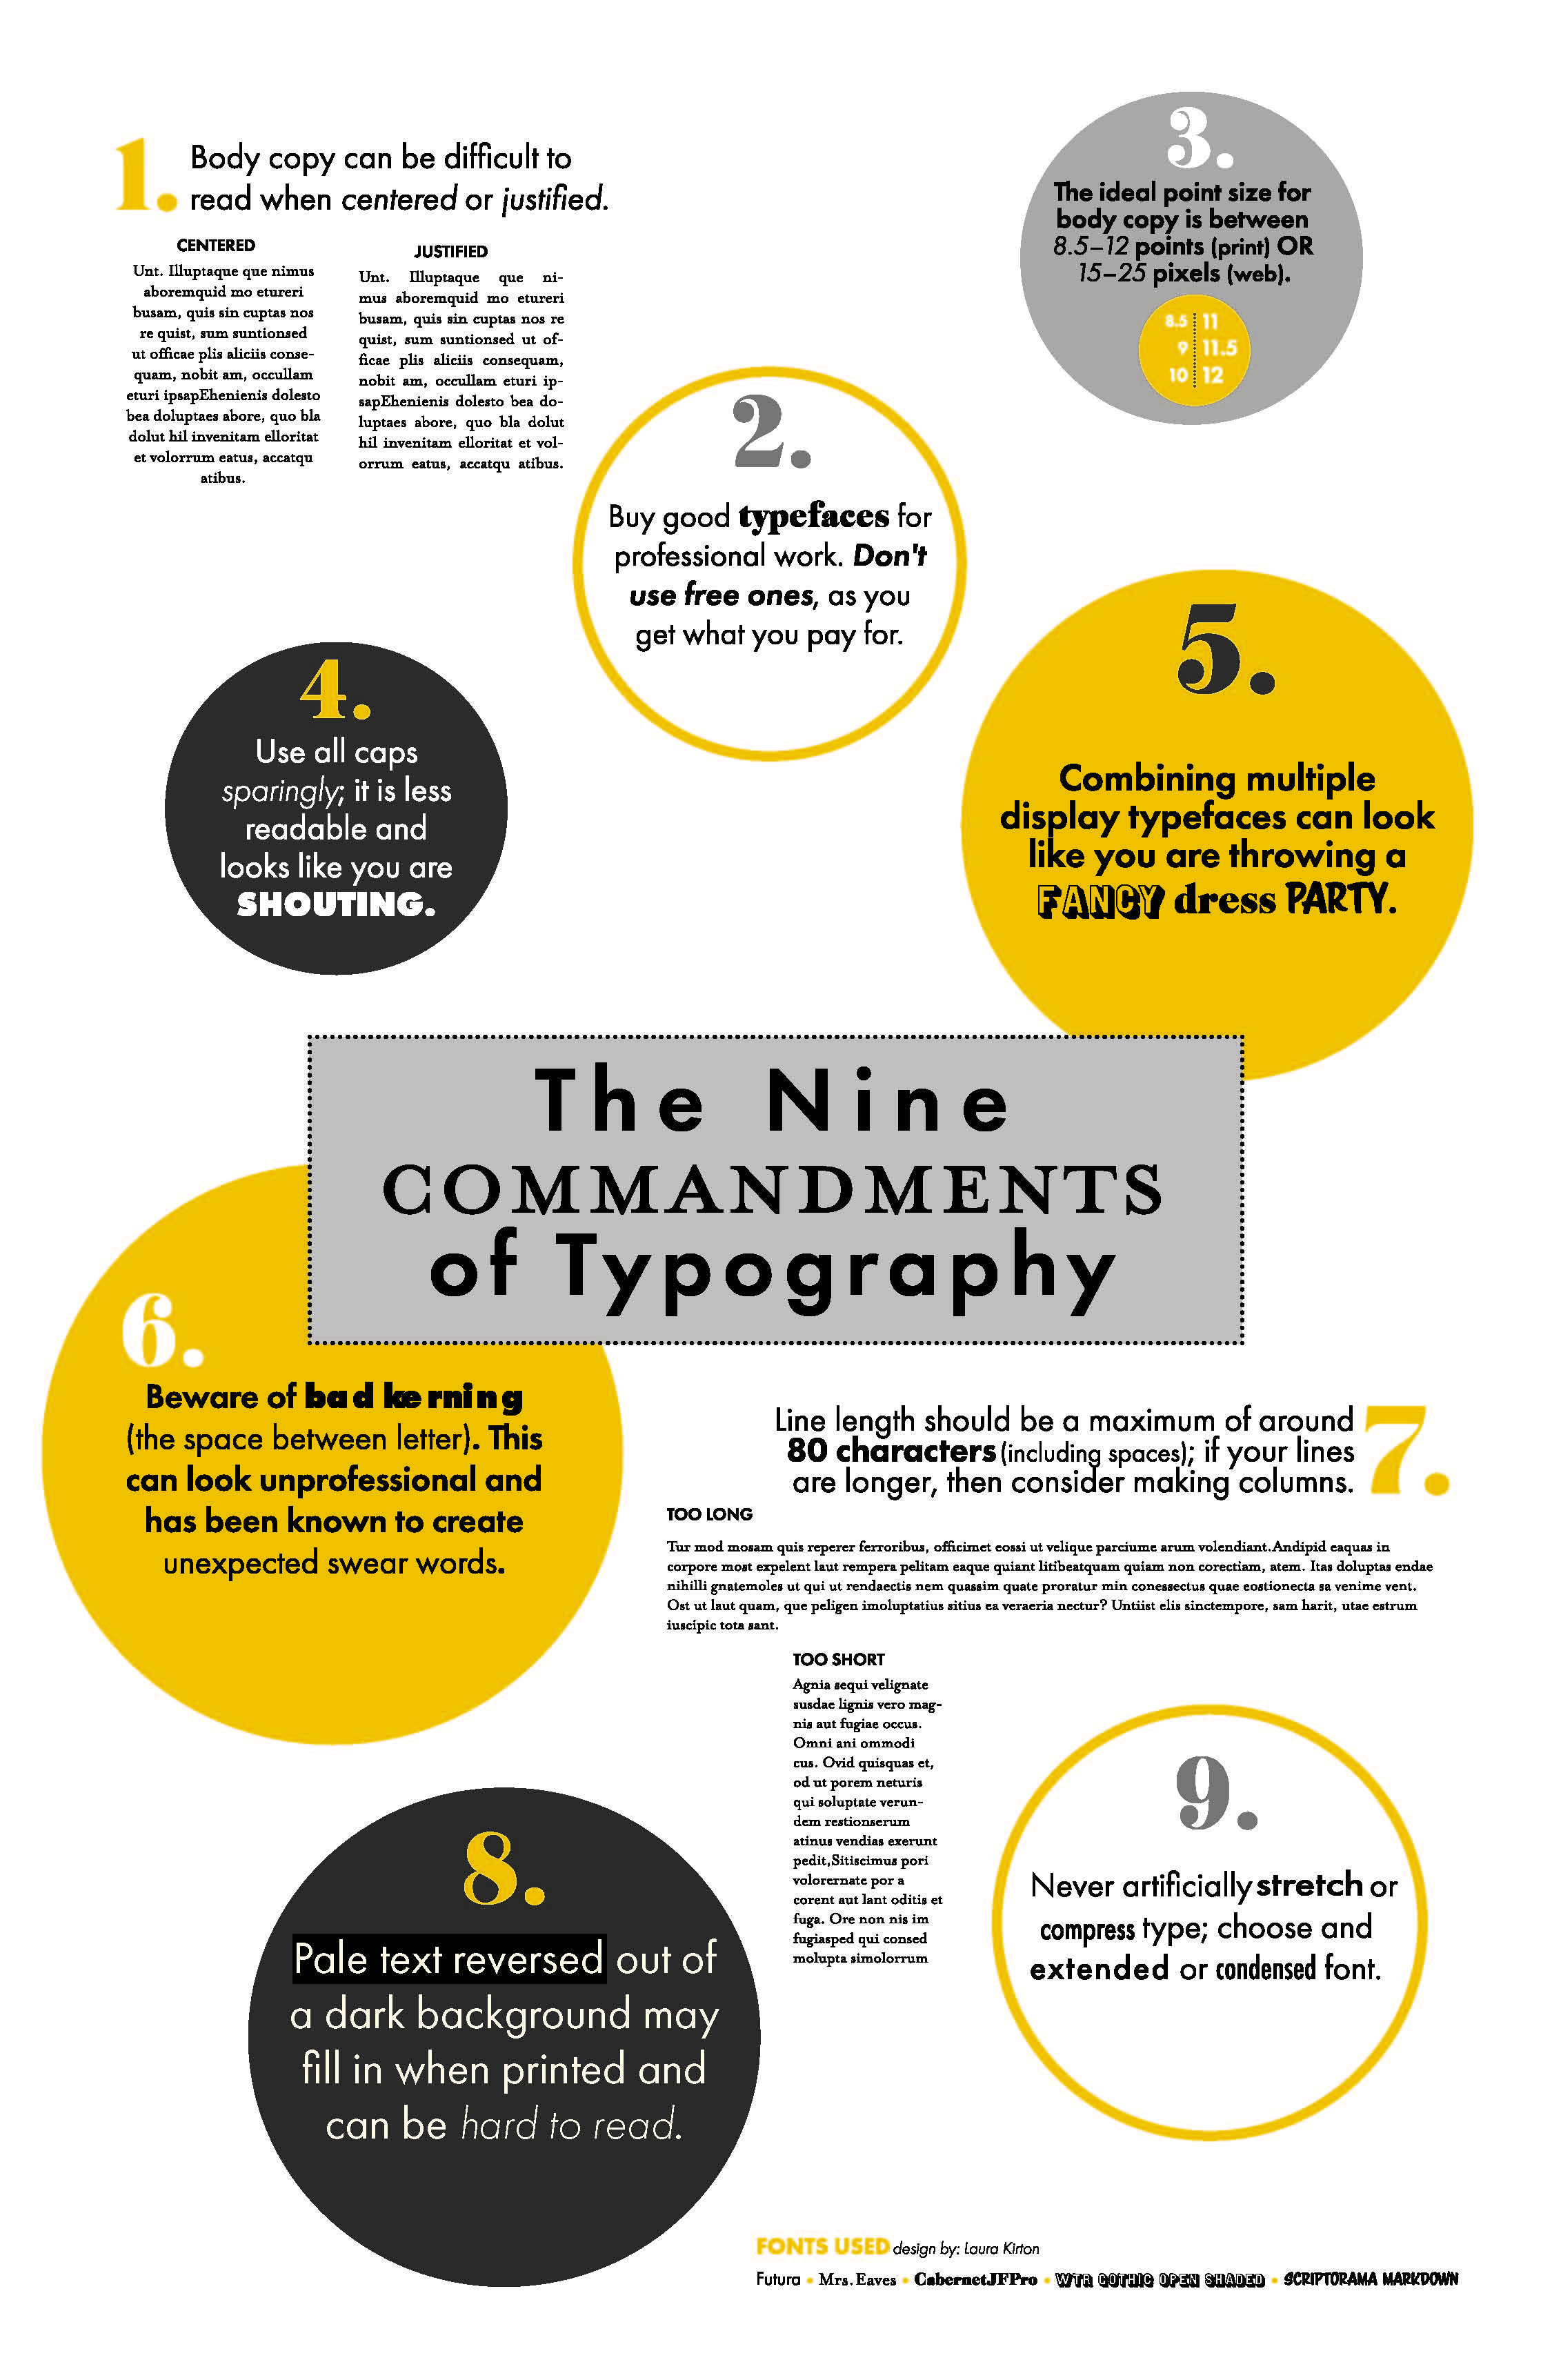 Kirton_TypographyCommandments_outline2_Page_2.jpg